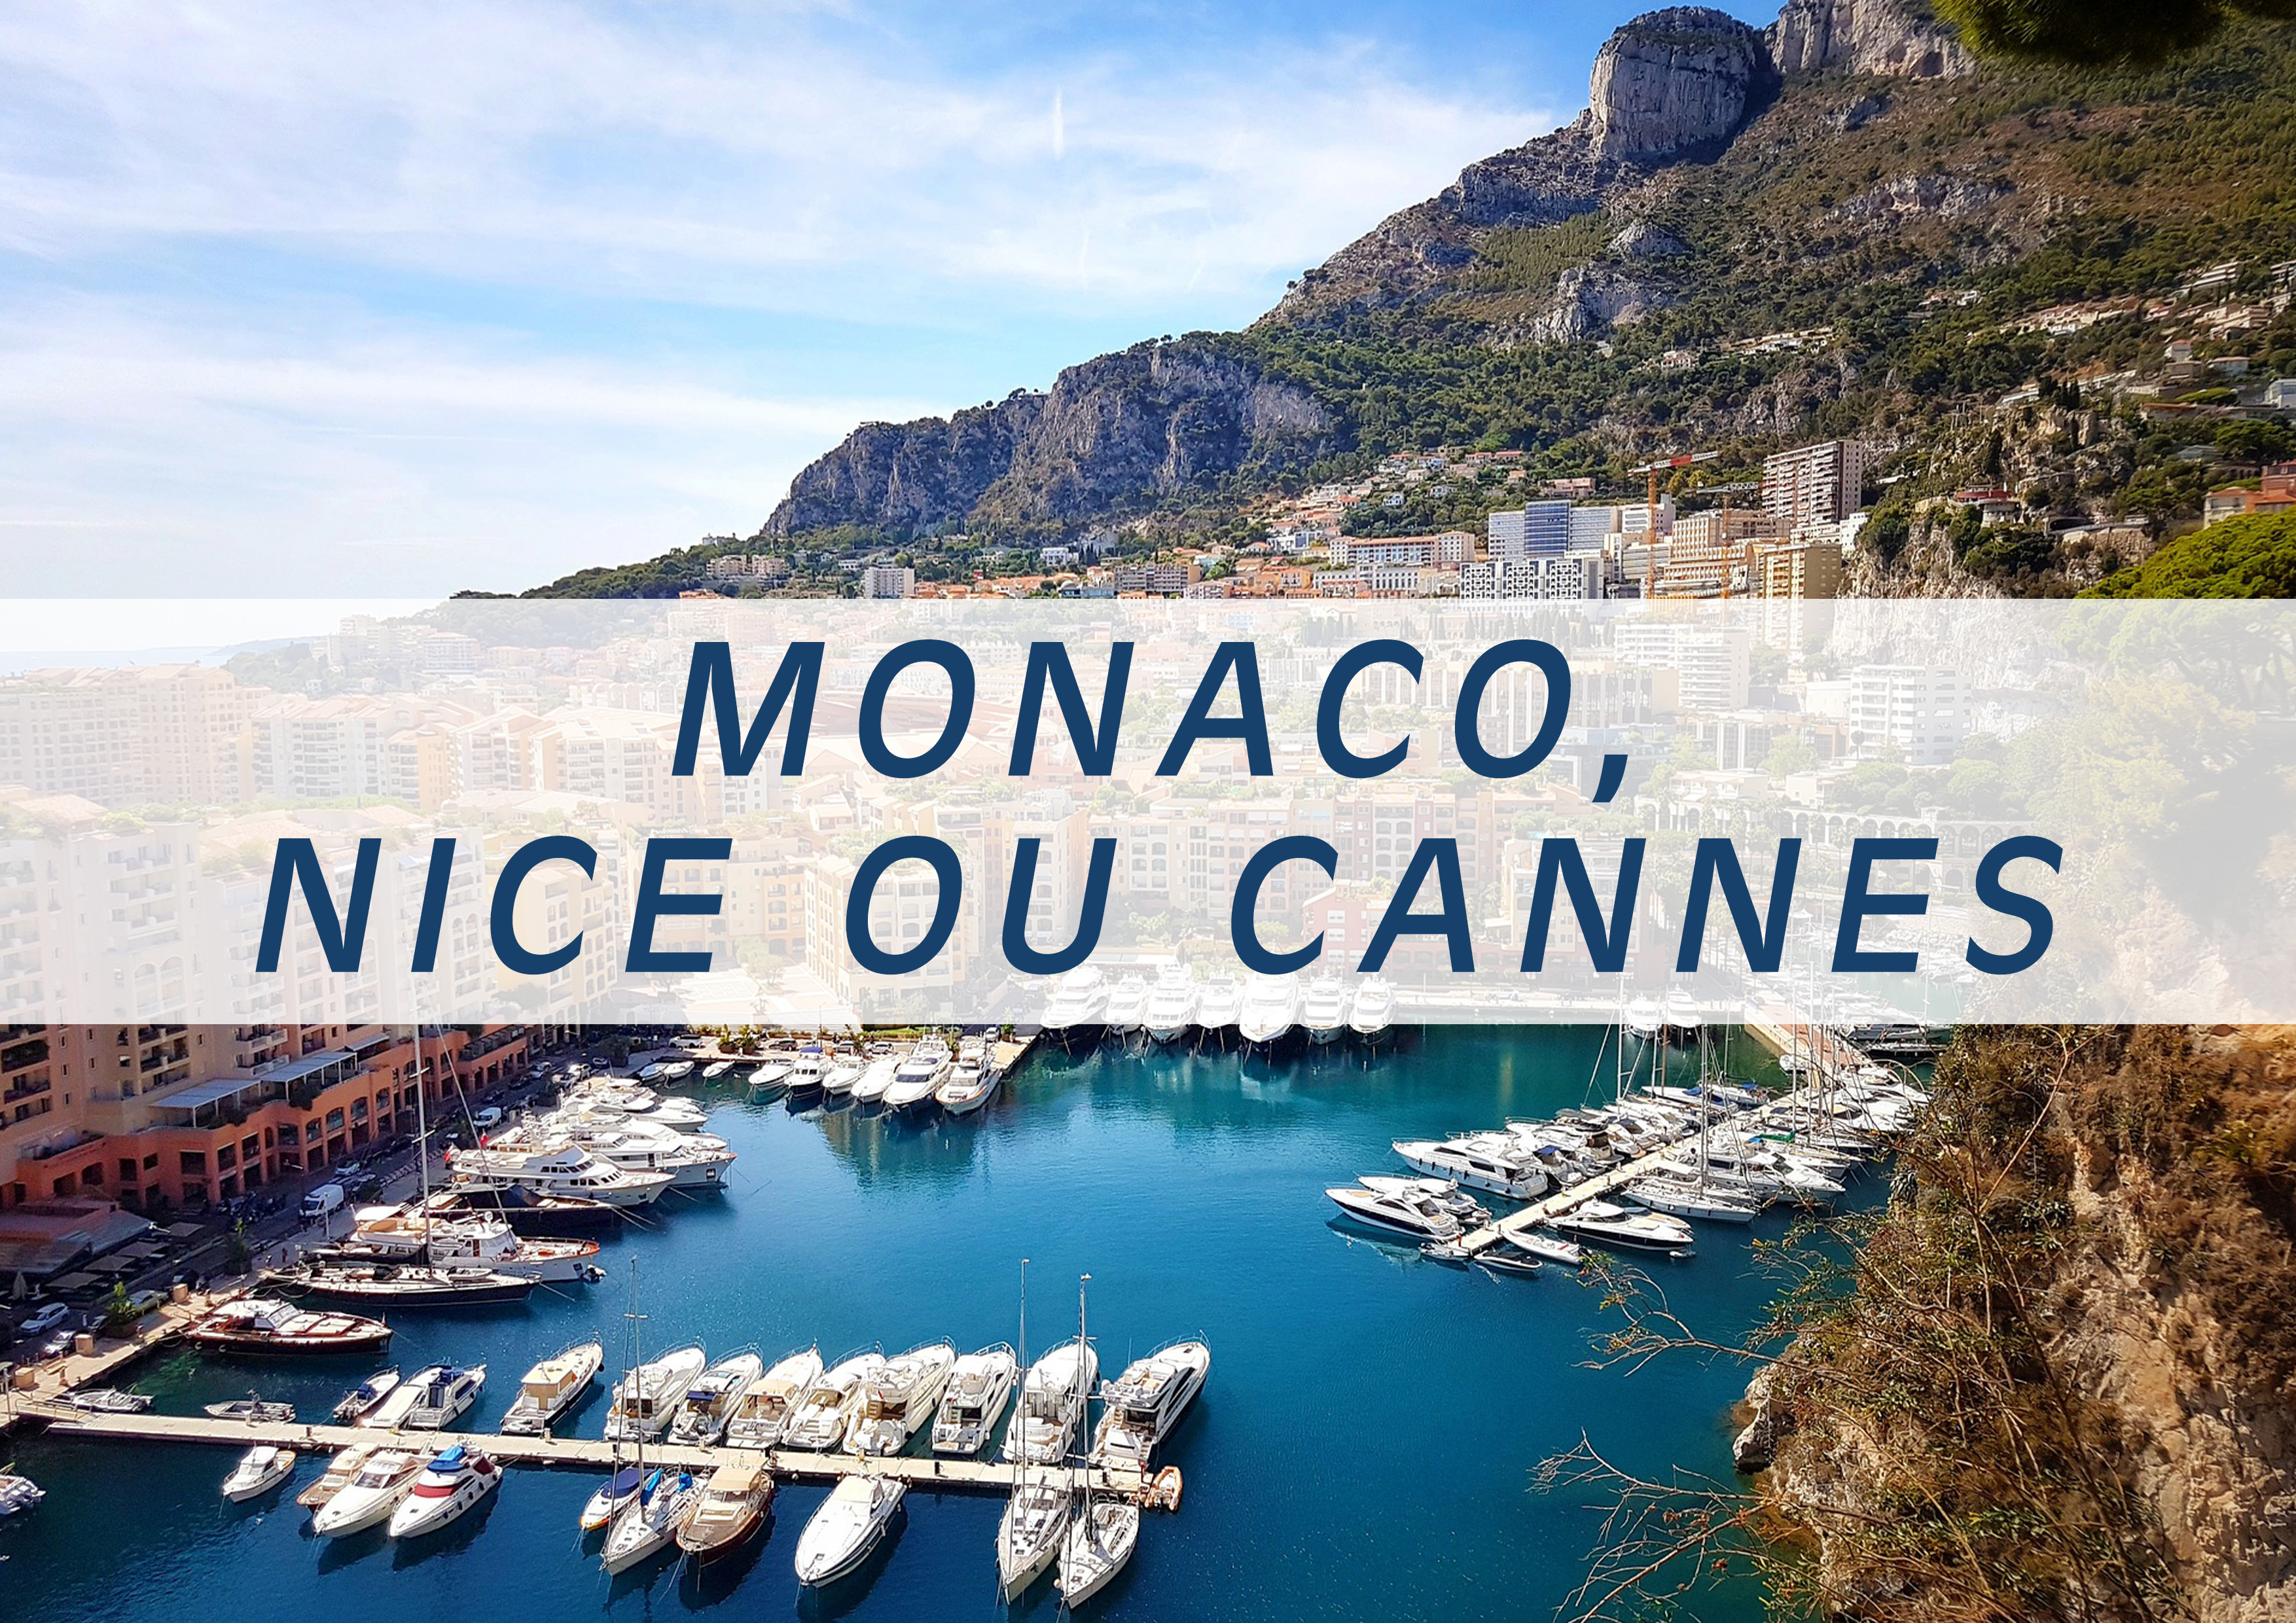 Departure from Monaco, Nice or Cannes - Heli Land & Sea - Heli Air Monaco